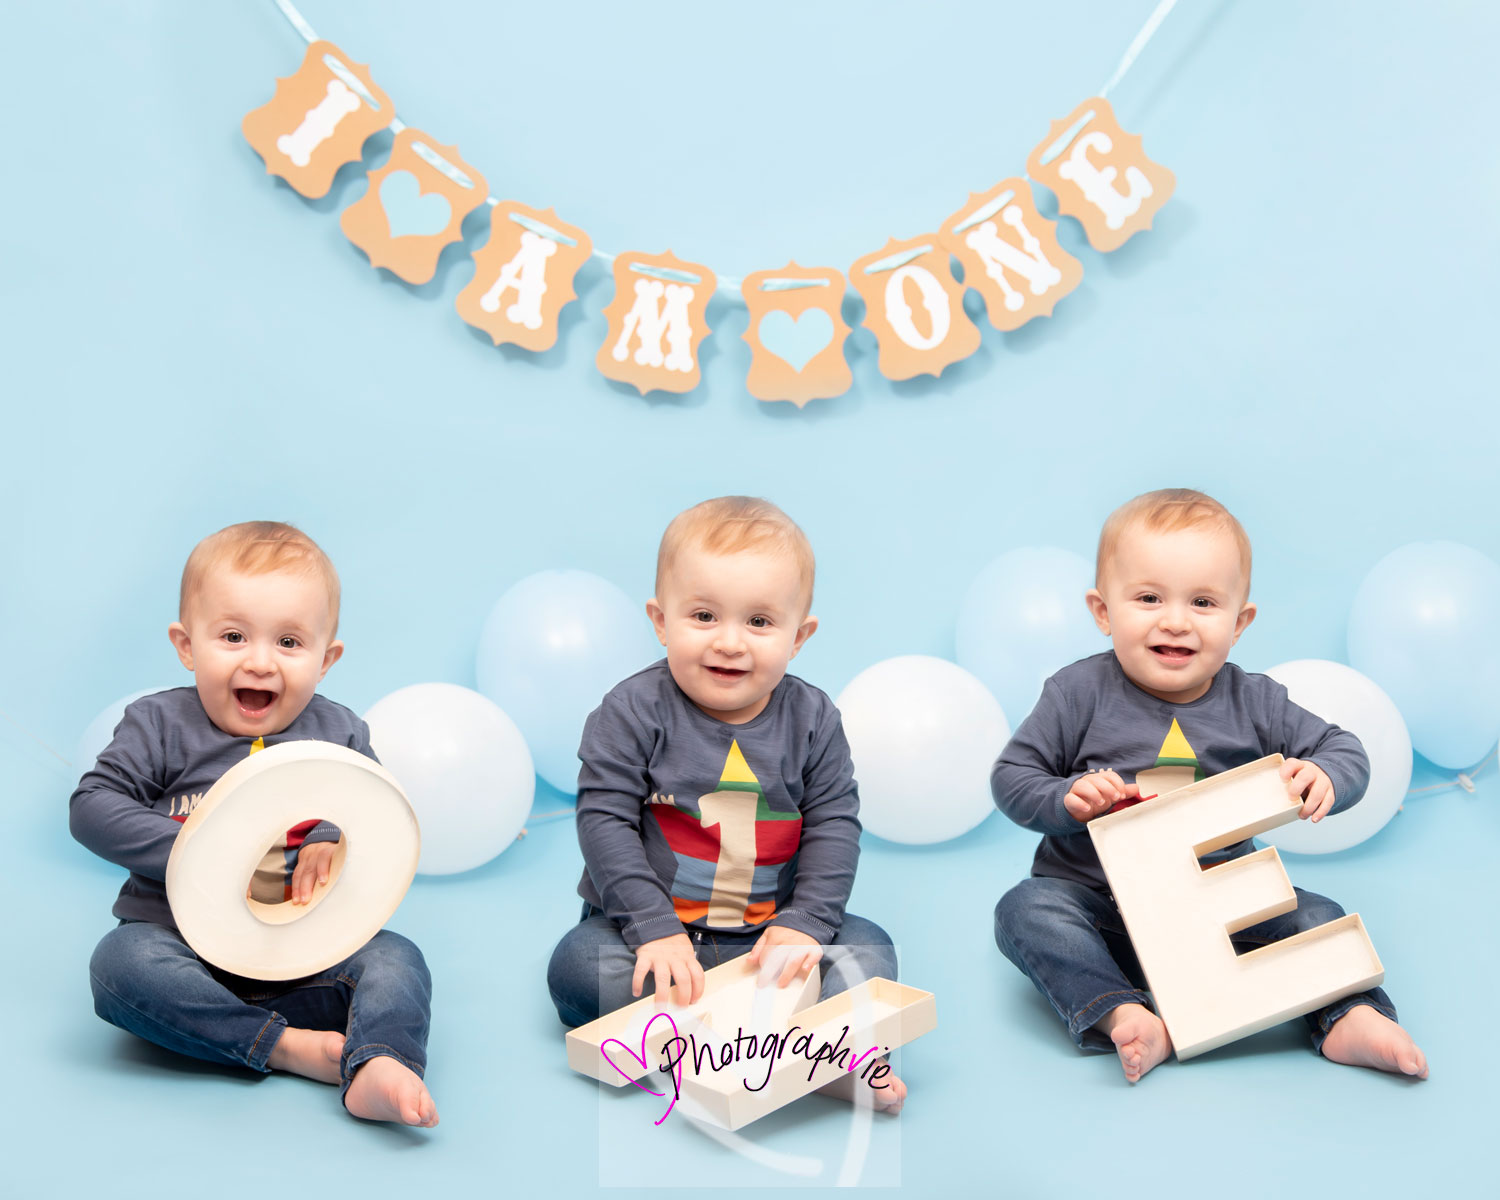 Our fun 'one' photo for first birthday memories